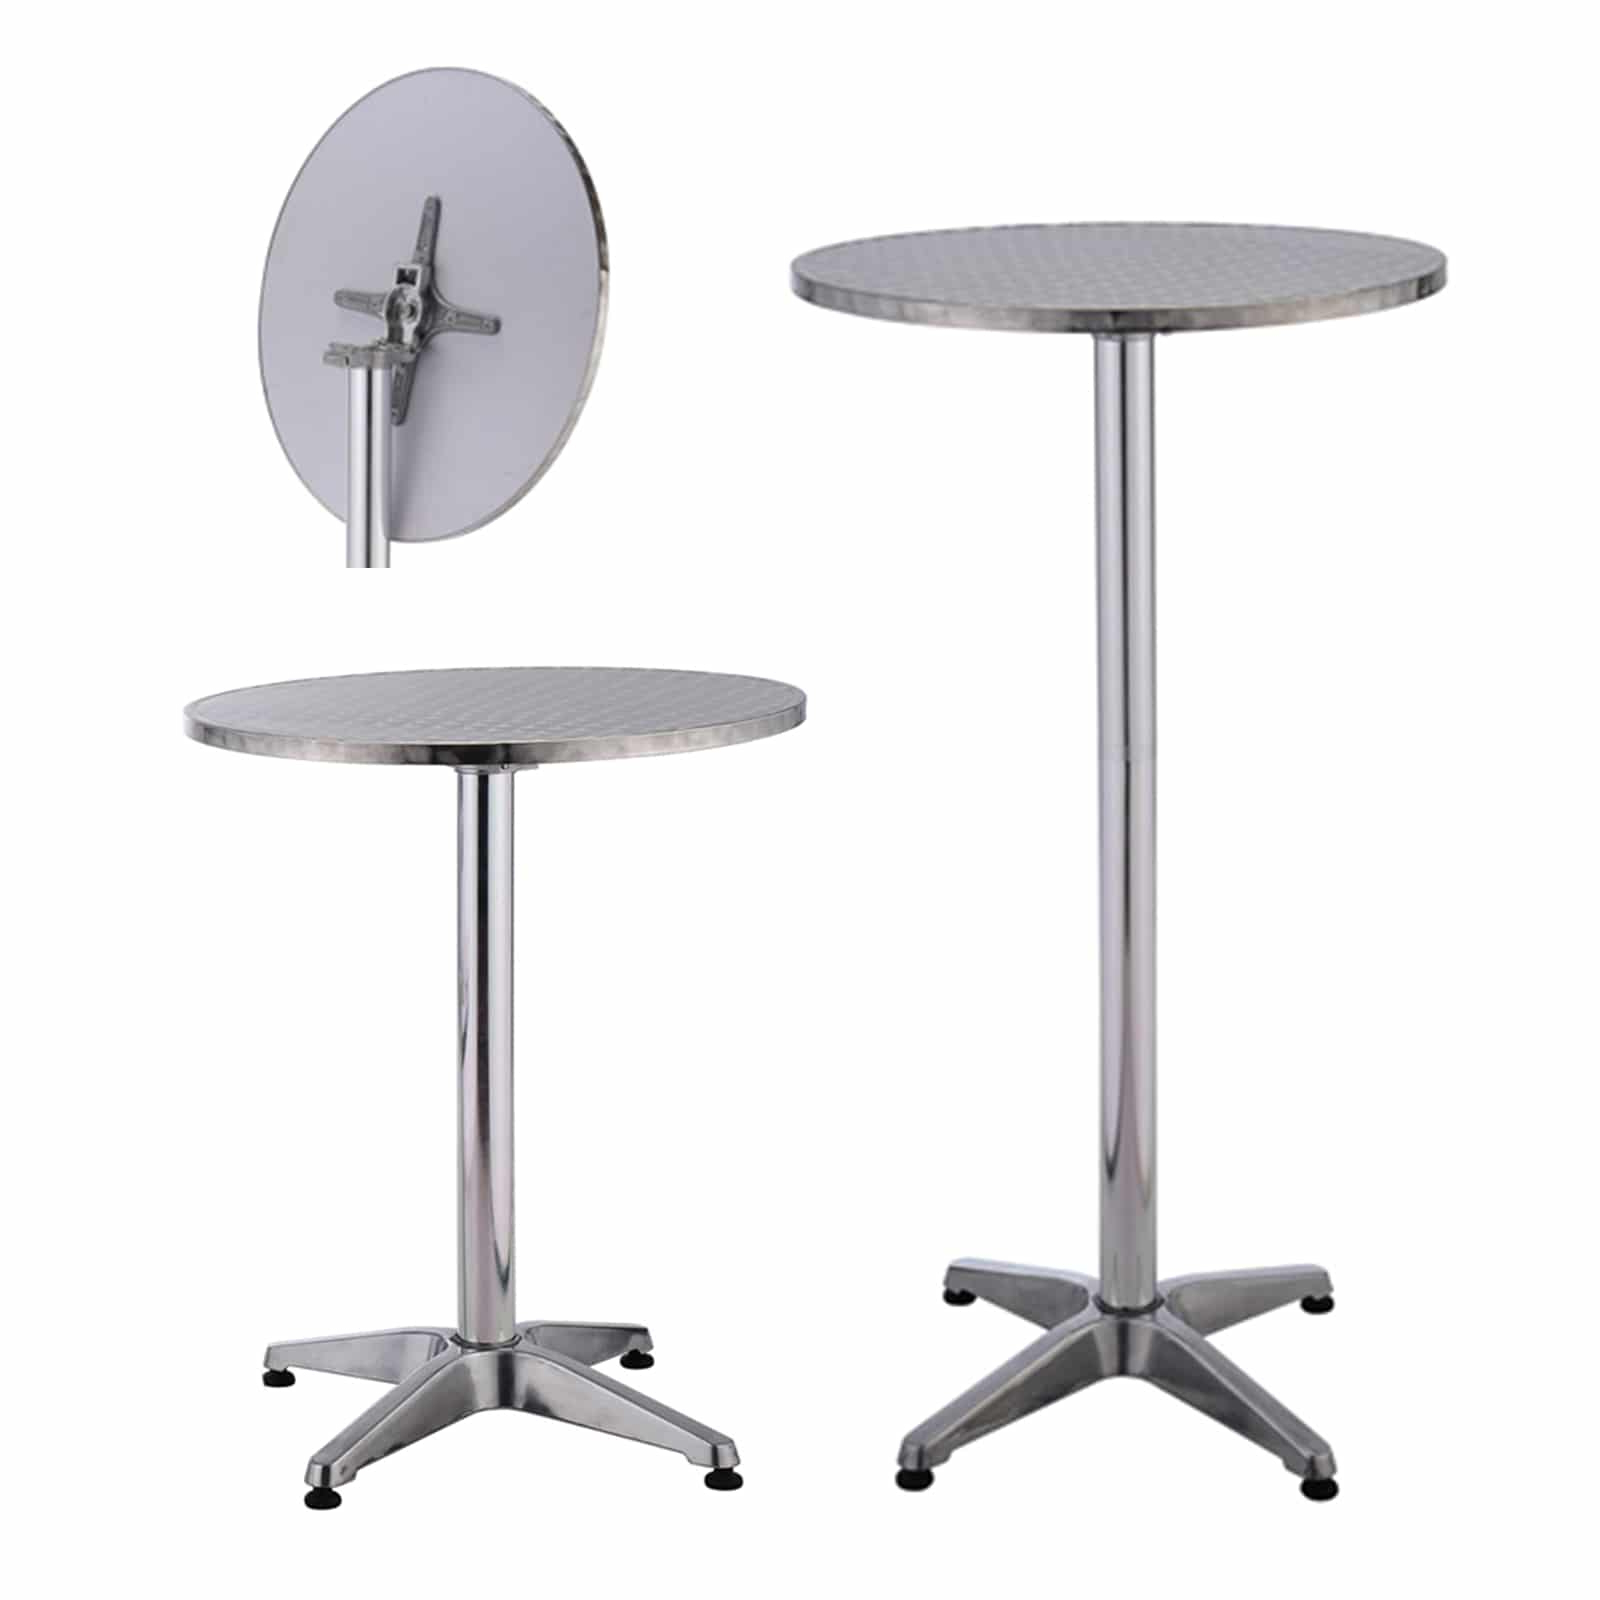 Trendy Verona Cocktail Tables Inside Products :: Tables :: Aluminium Cocktail Table 60 Cm Round (View 19 of 20)